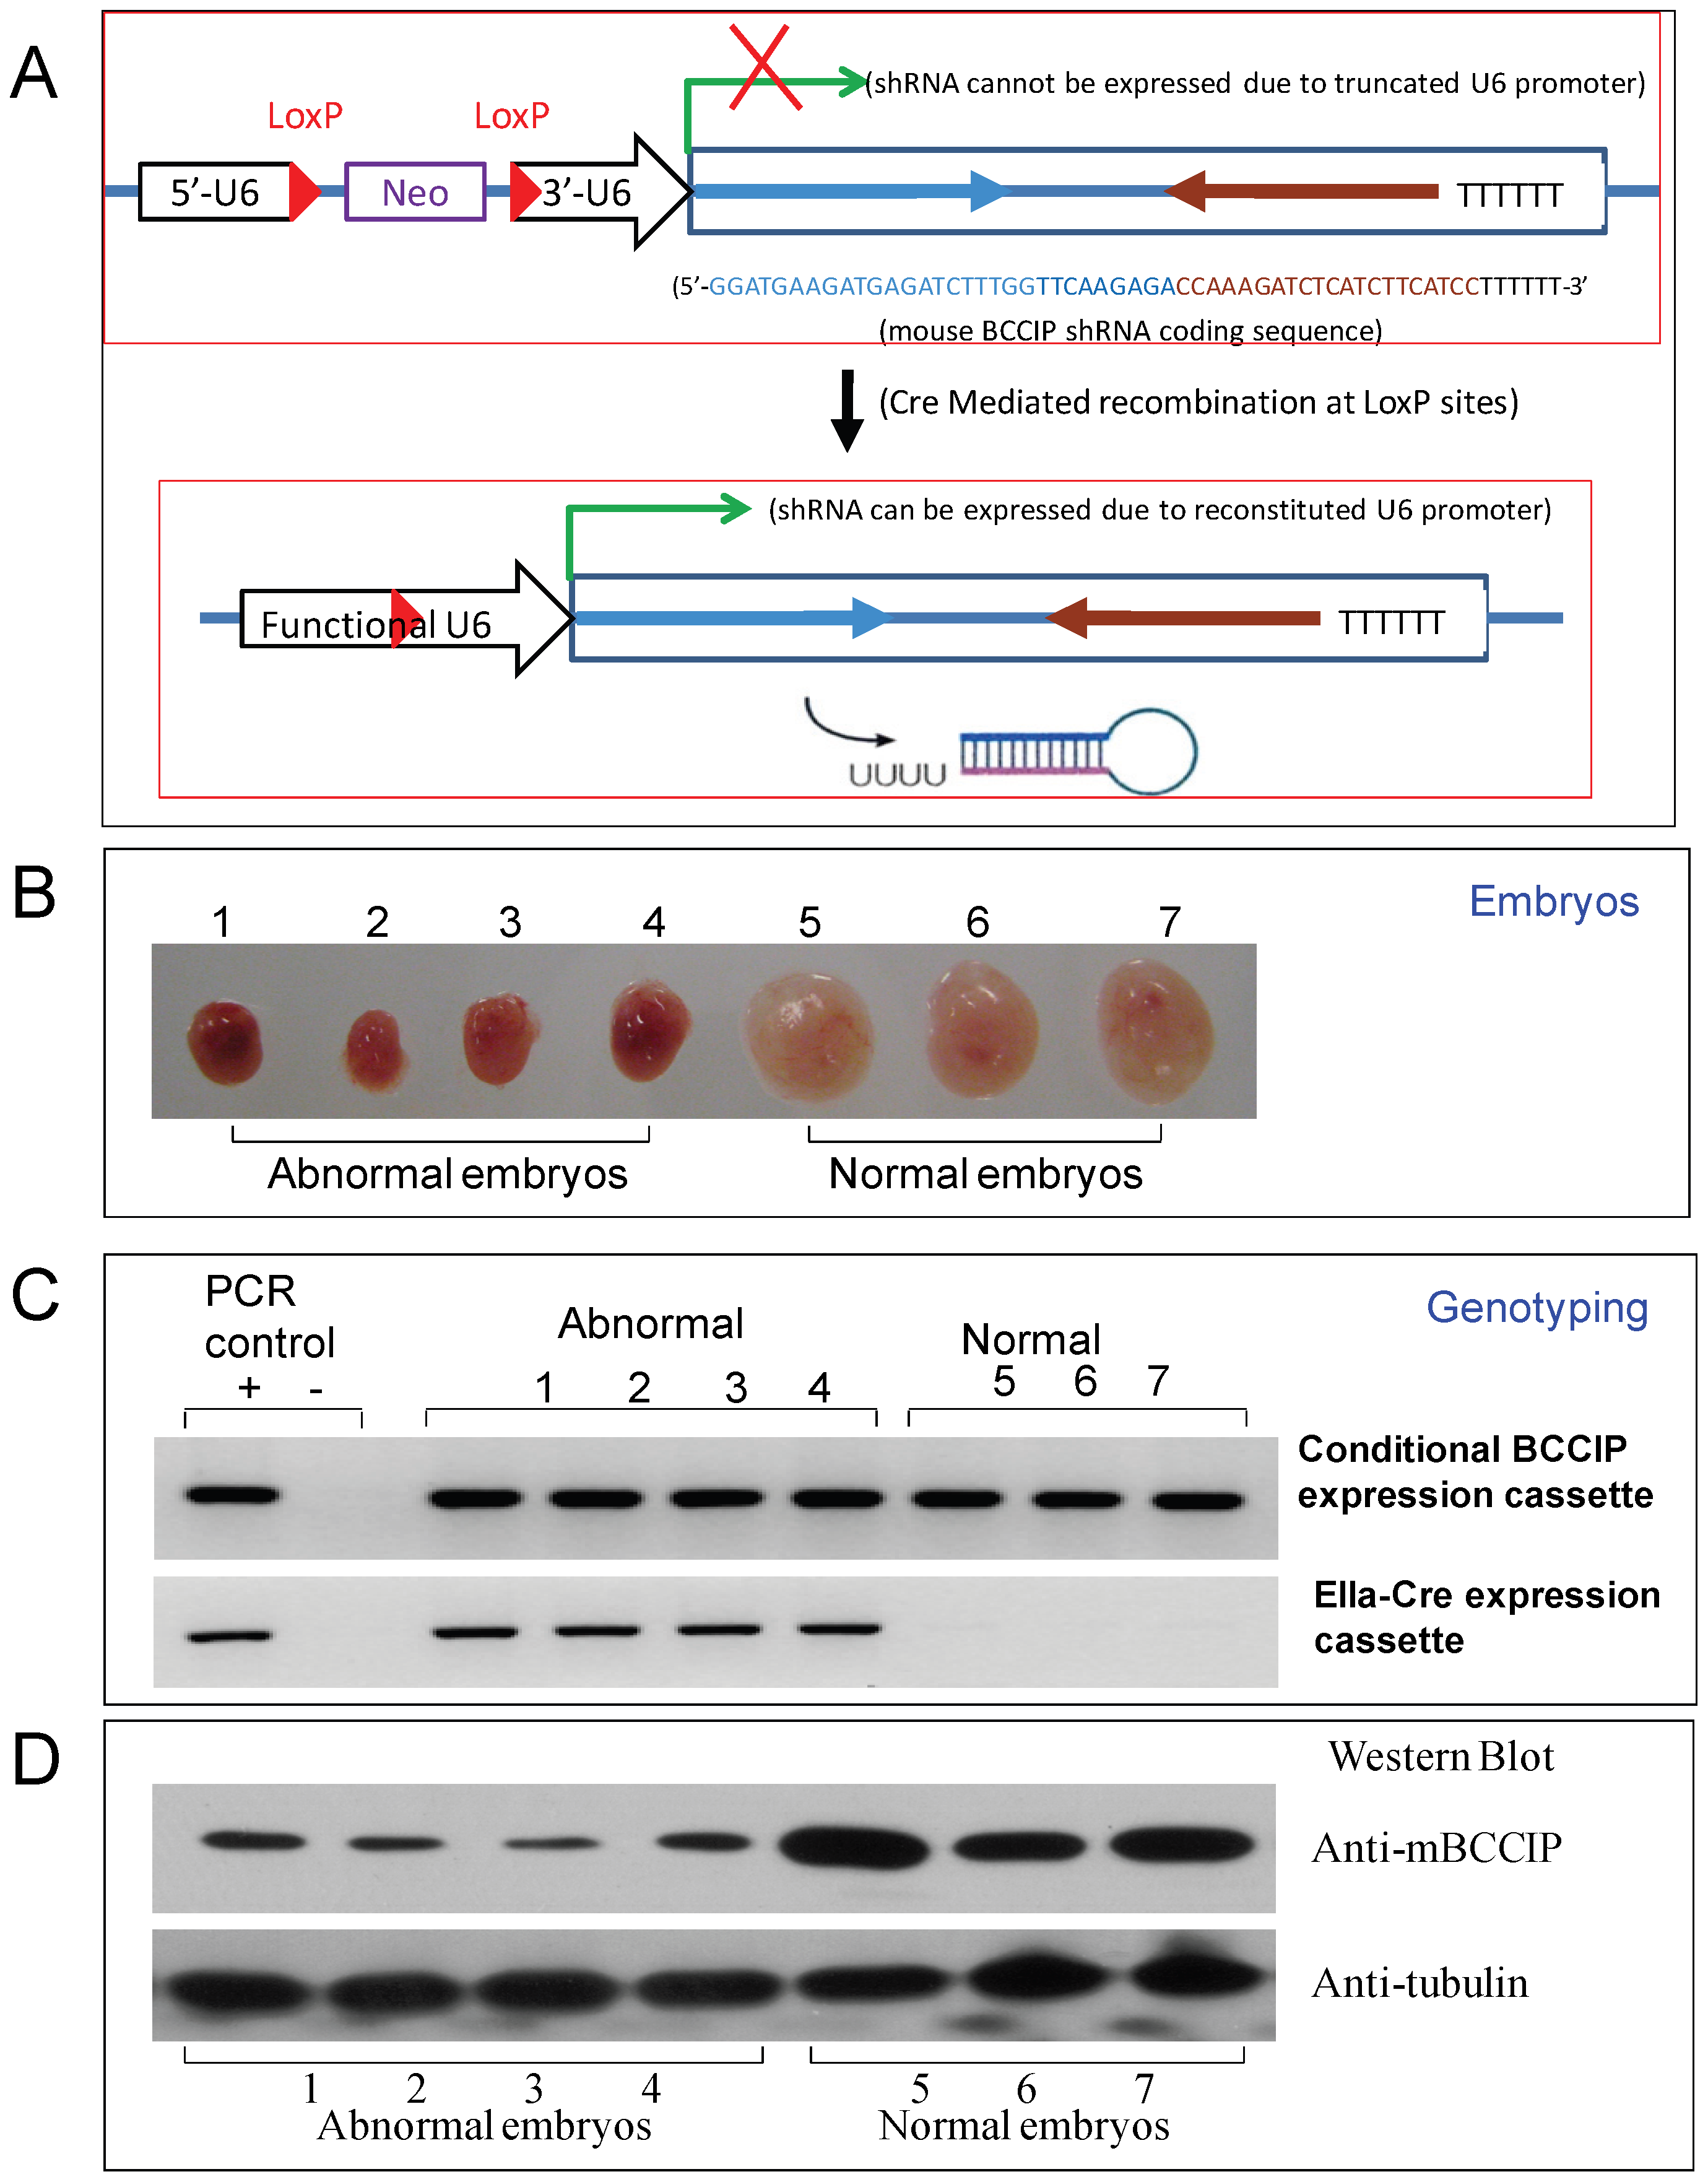 Construction of a LoxP-Cre mediated conditional BCCIP knockdown mouse line.